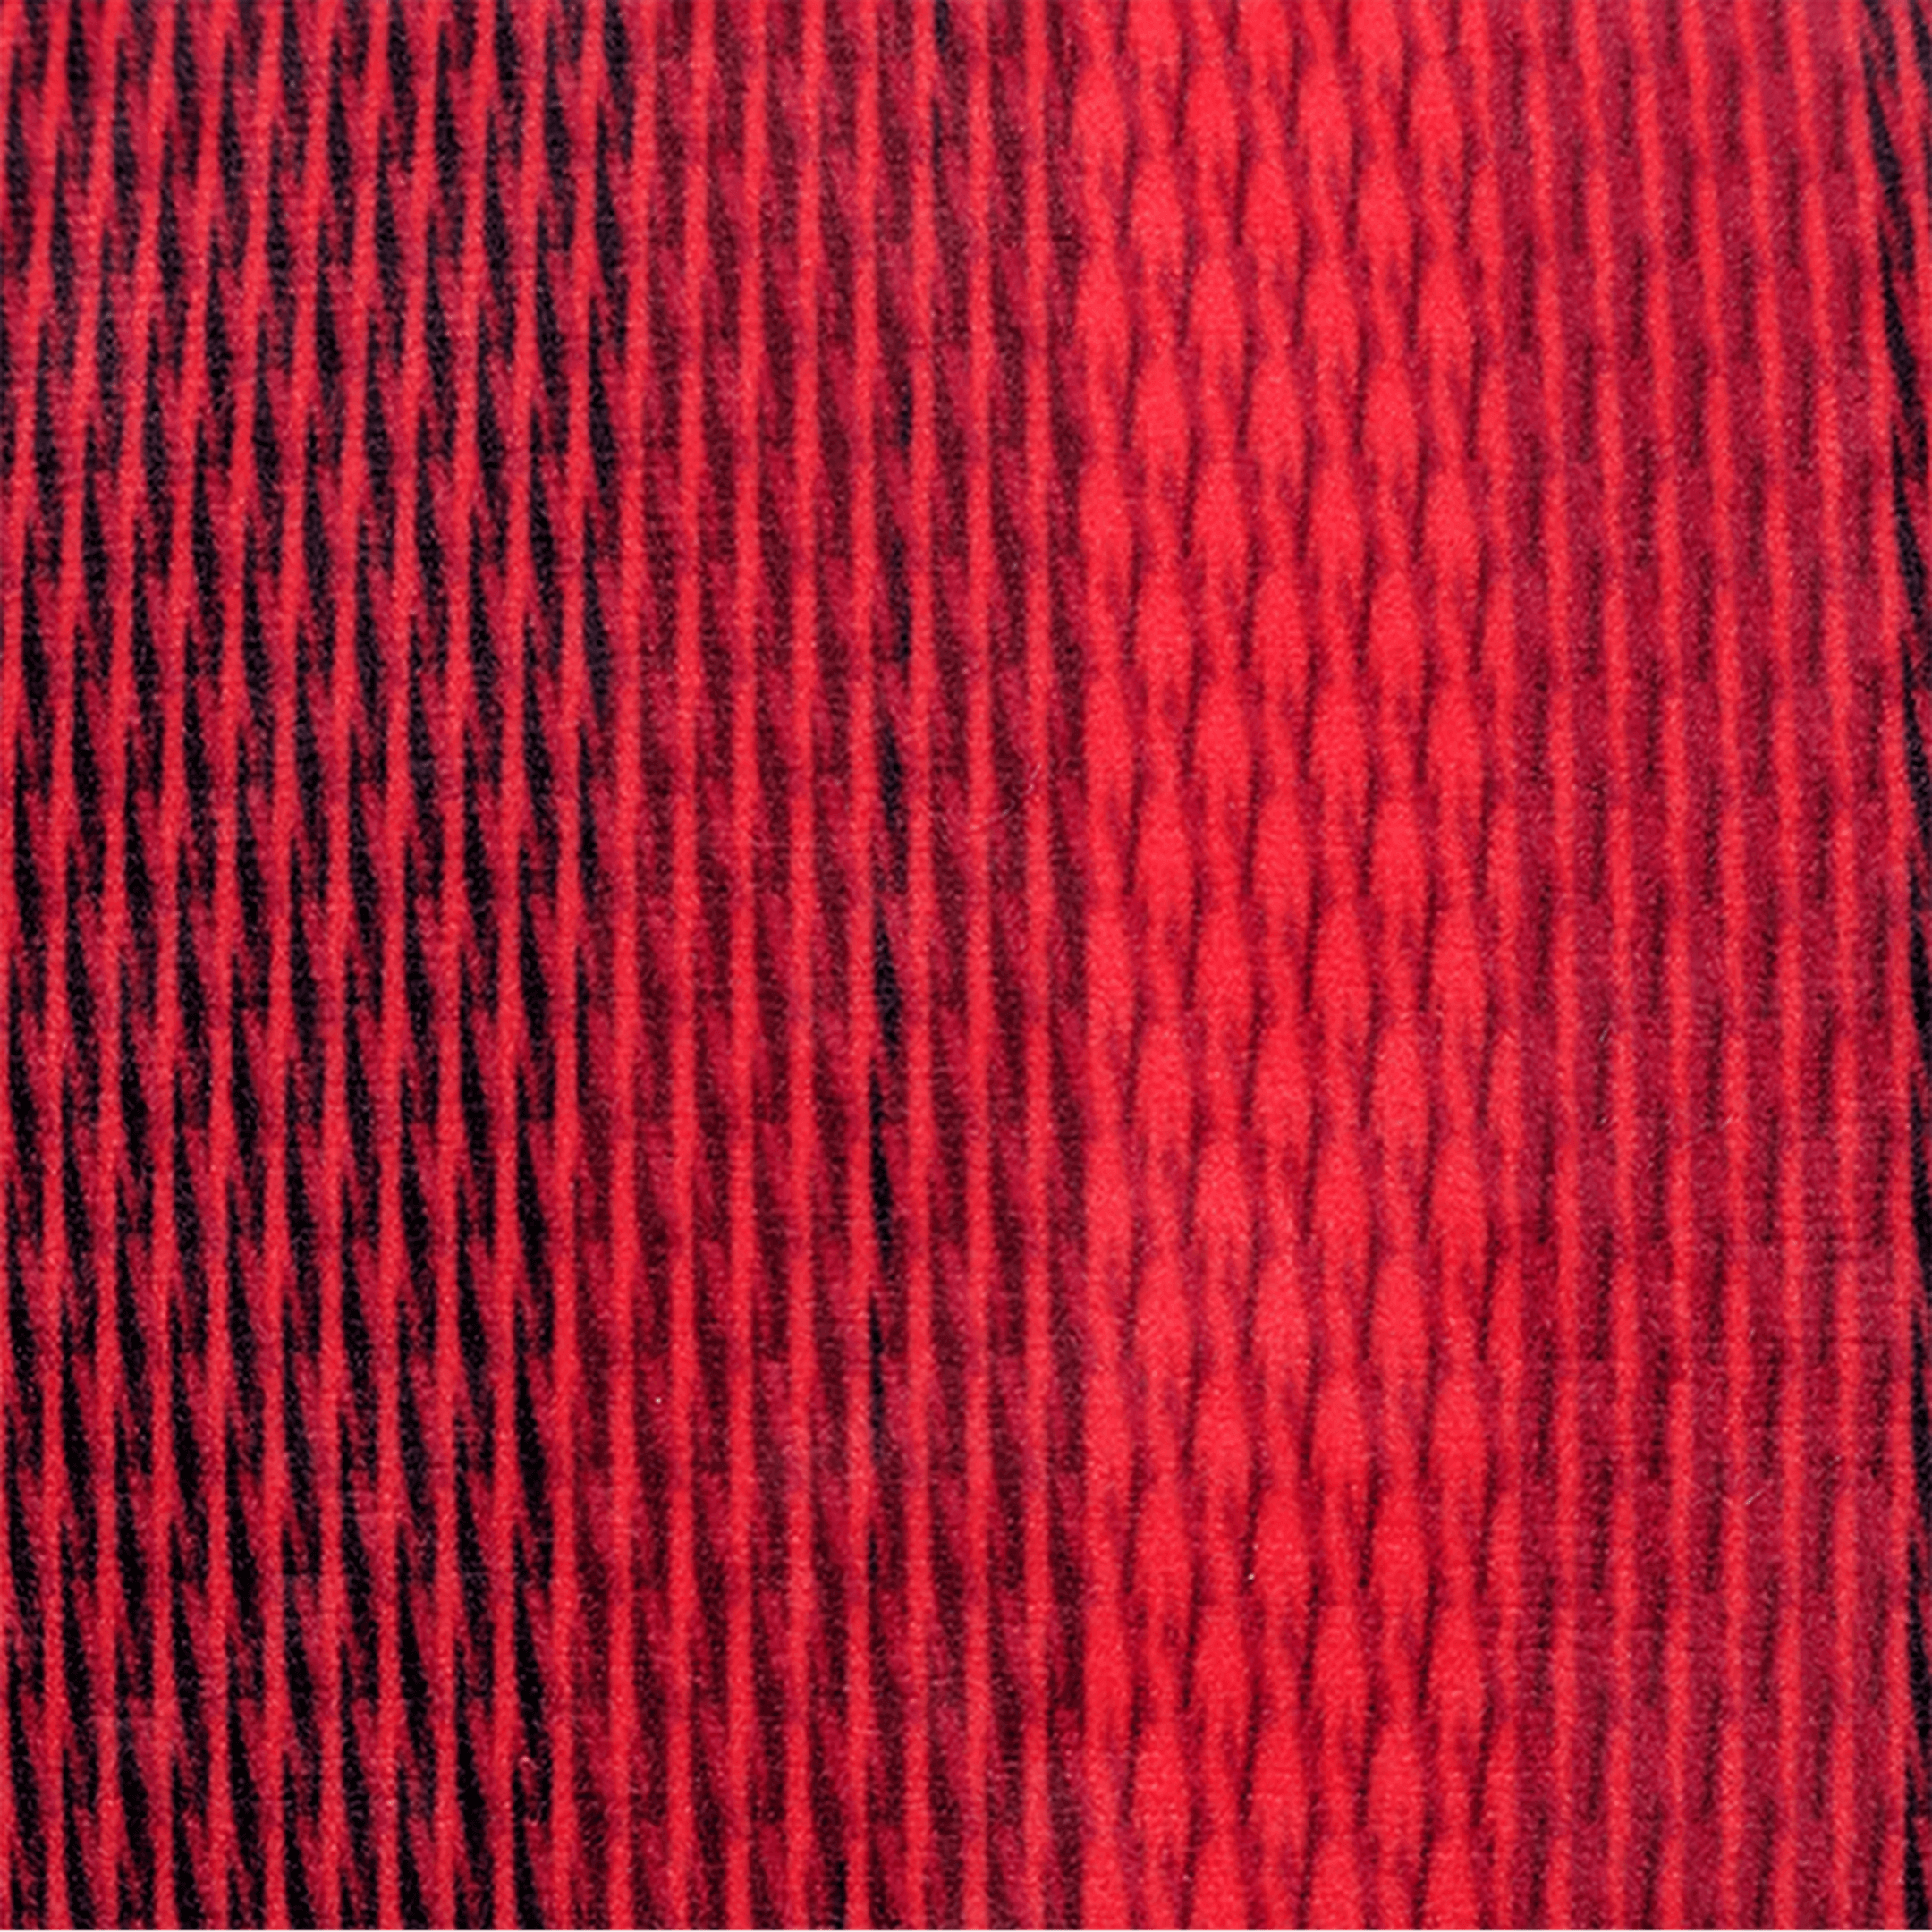 Fabric swatch for red faux suede throw pillow